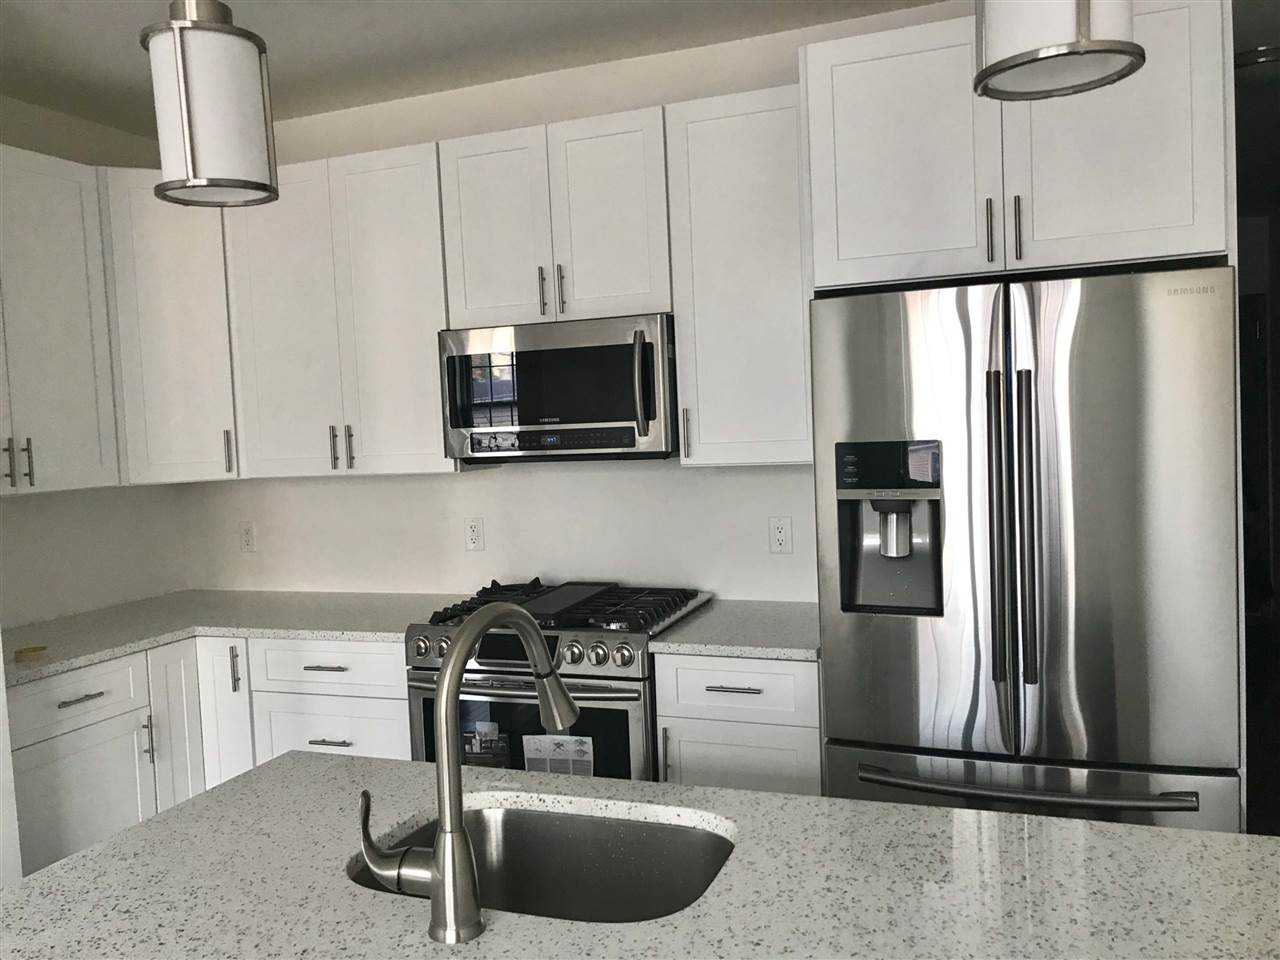 $1,950 - 1Br/1Ba -  for Sale in Journal Square, Jc, Journal Square